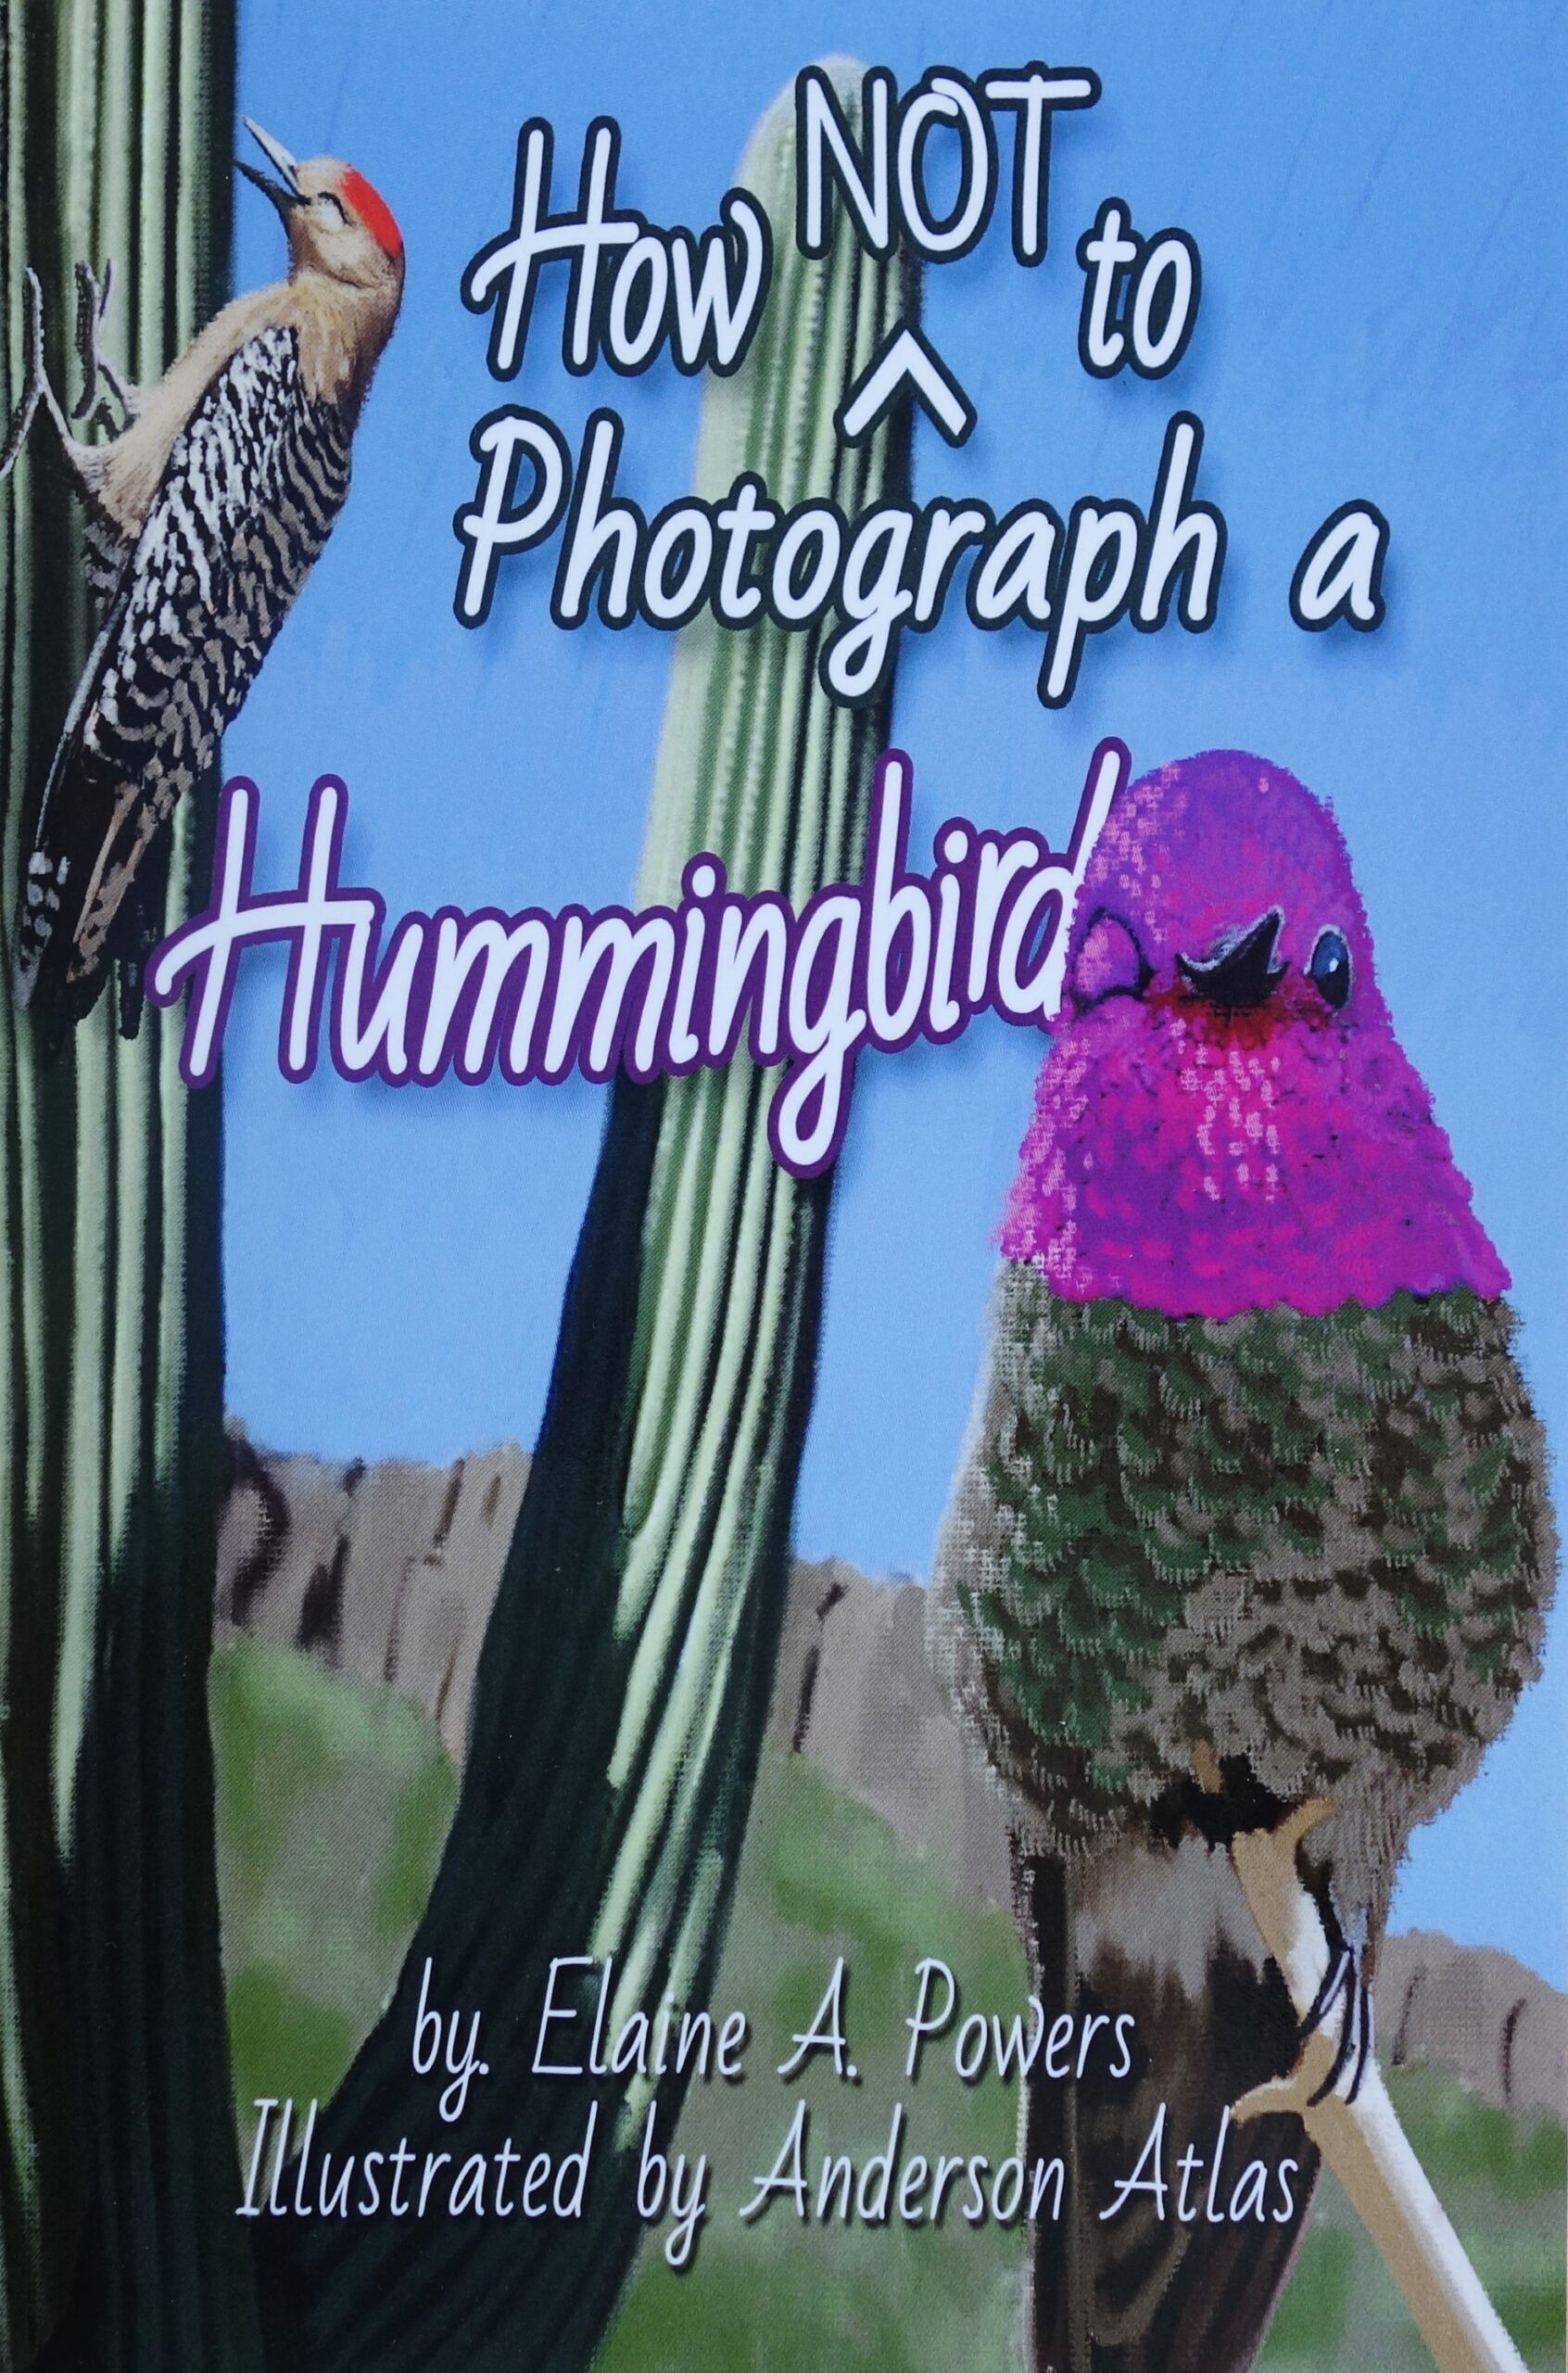 Colorful book cover illustrated with Anna's Hummingbird in The Sonoran Desert